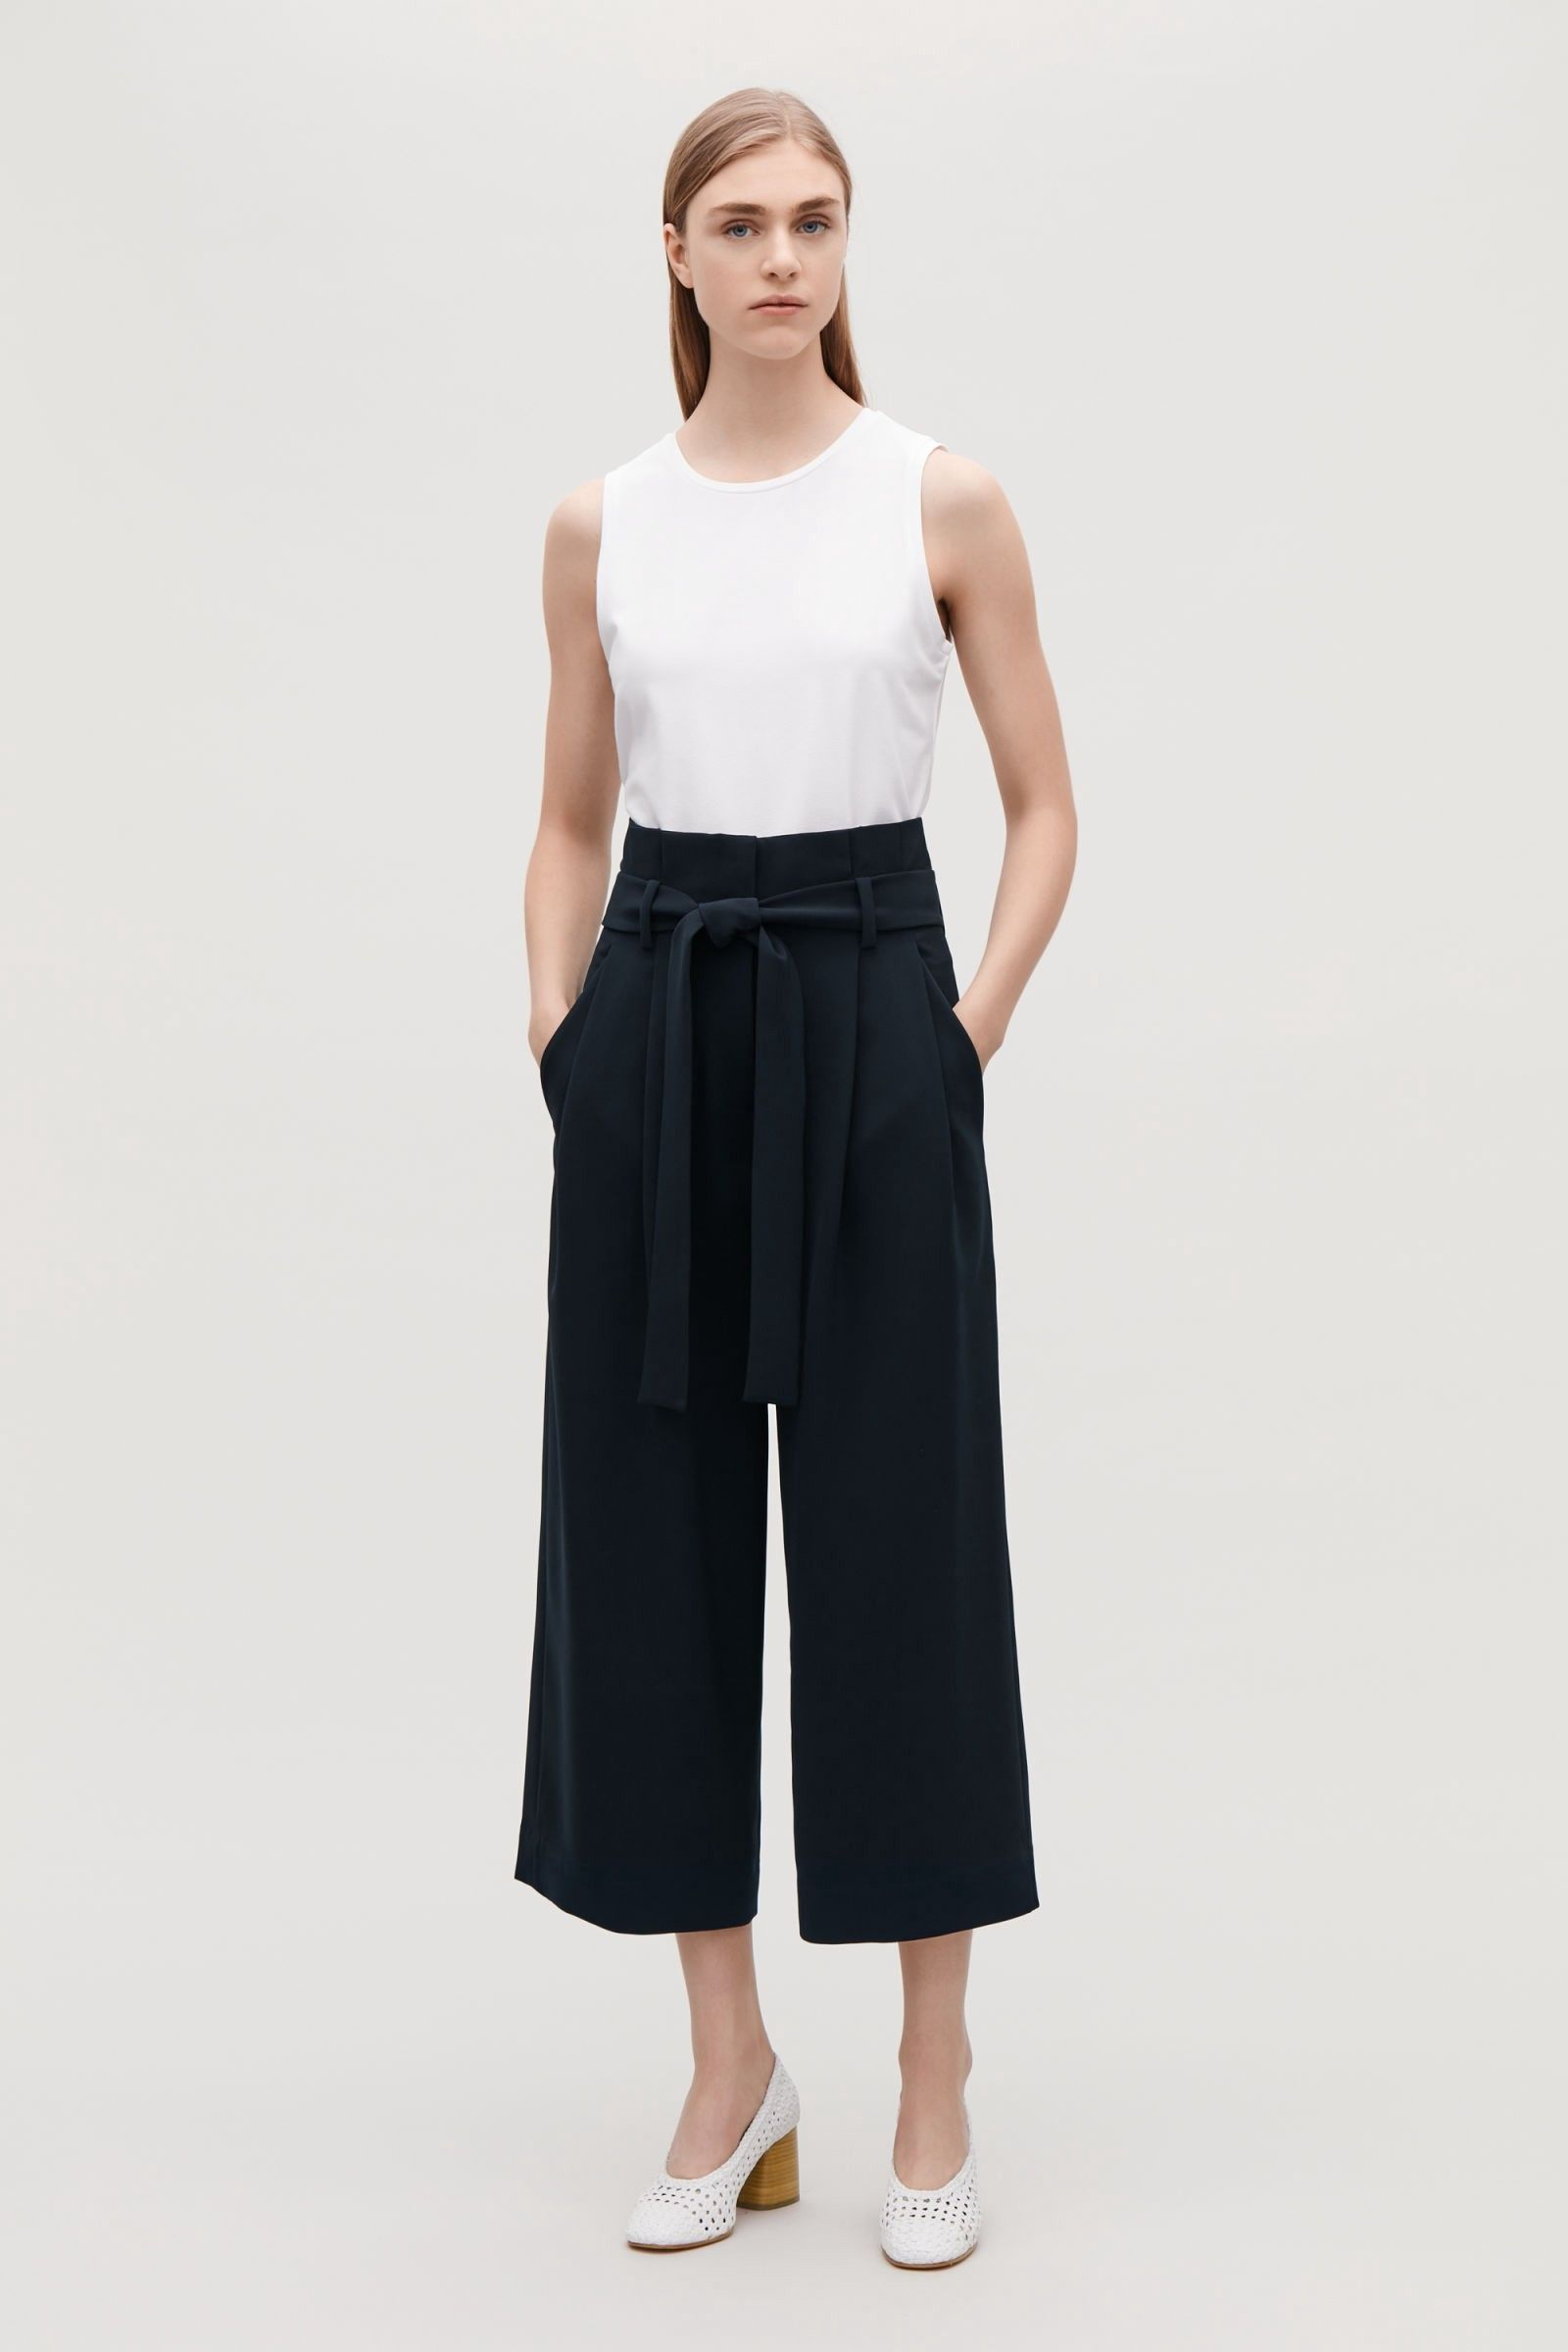 Como Usar · Cos Belted High-Waist Trousers - Navy 12 Pantalones De Mujeres bb0c52ad50d